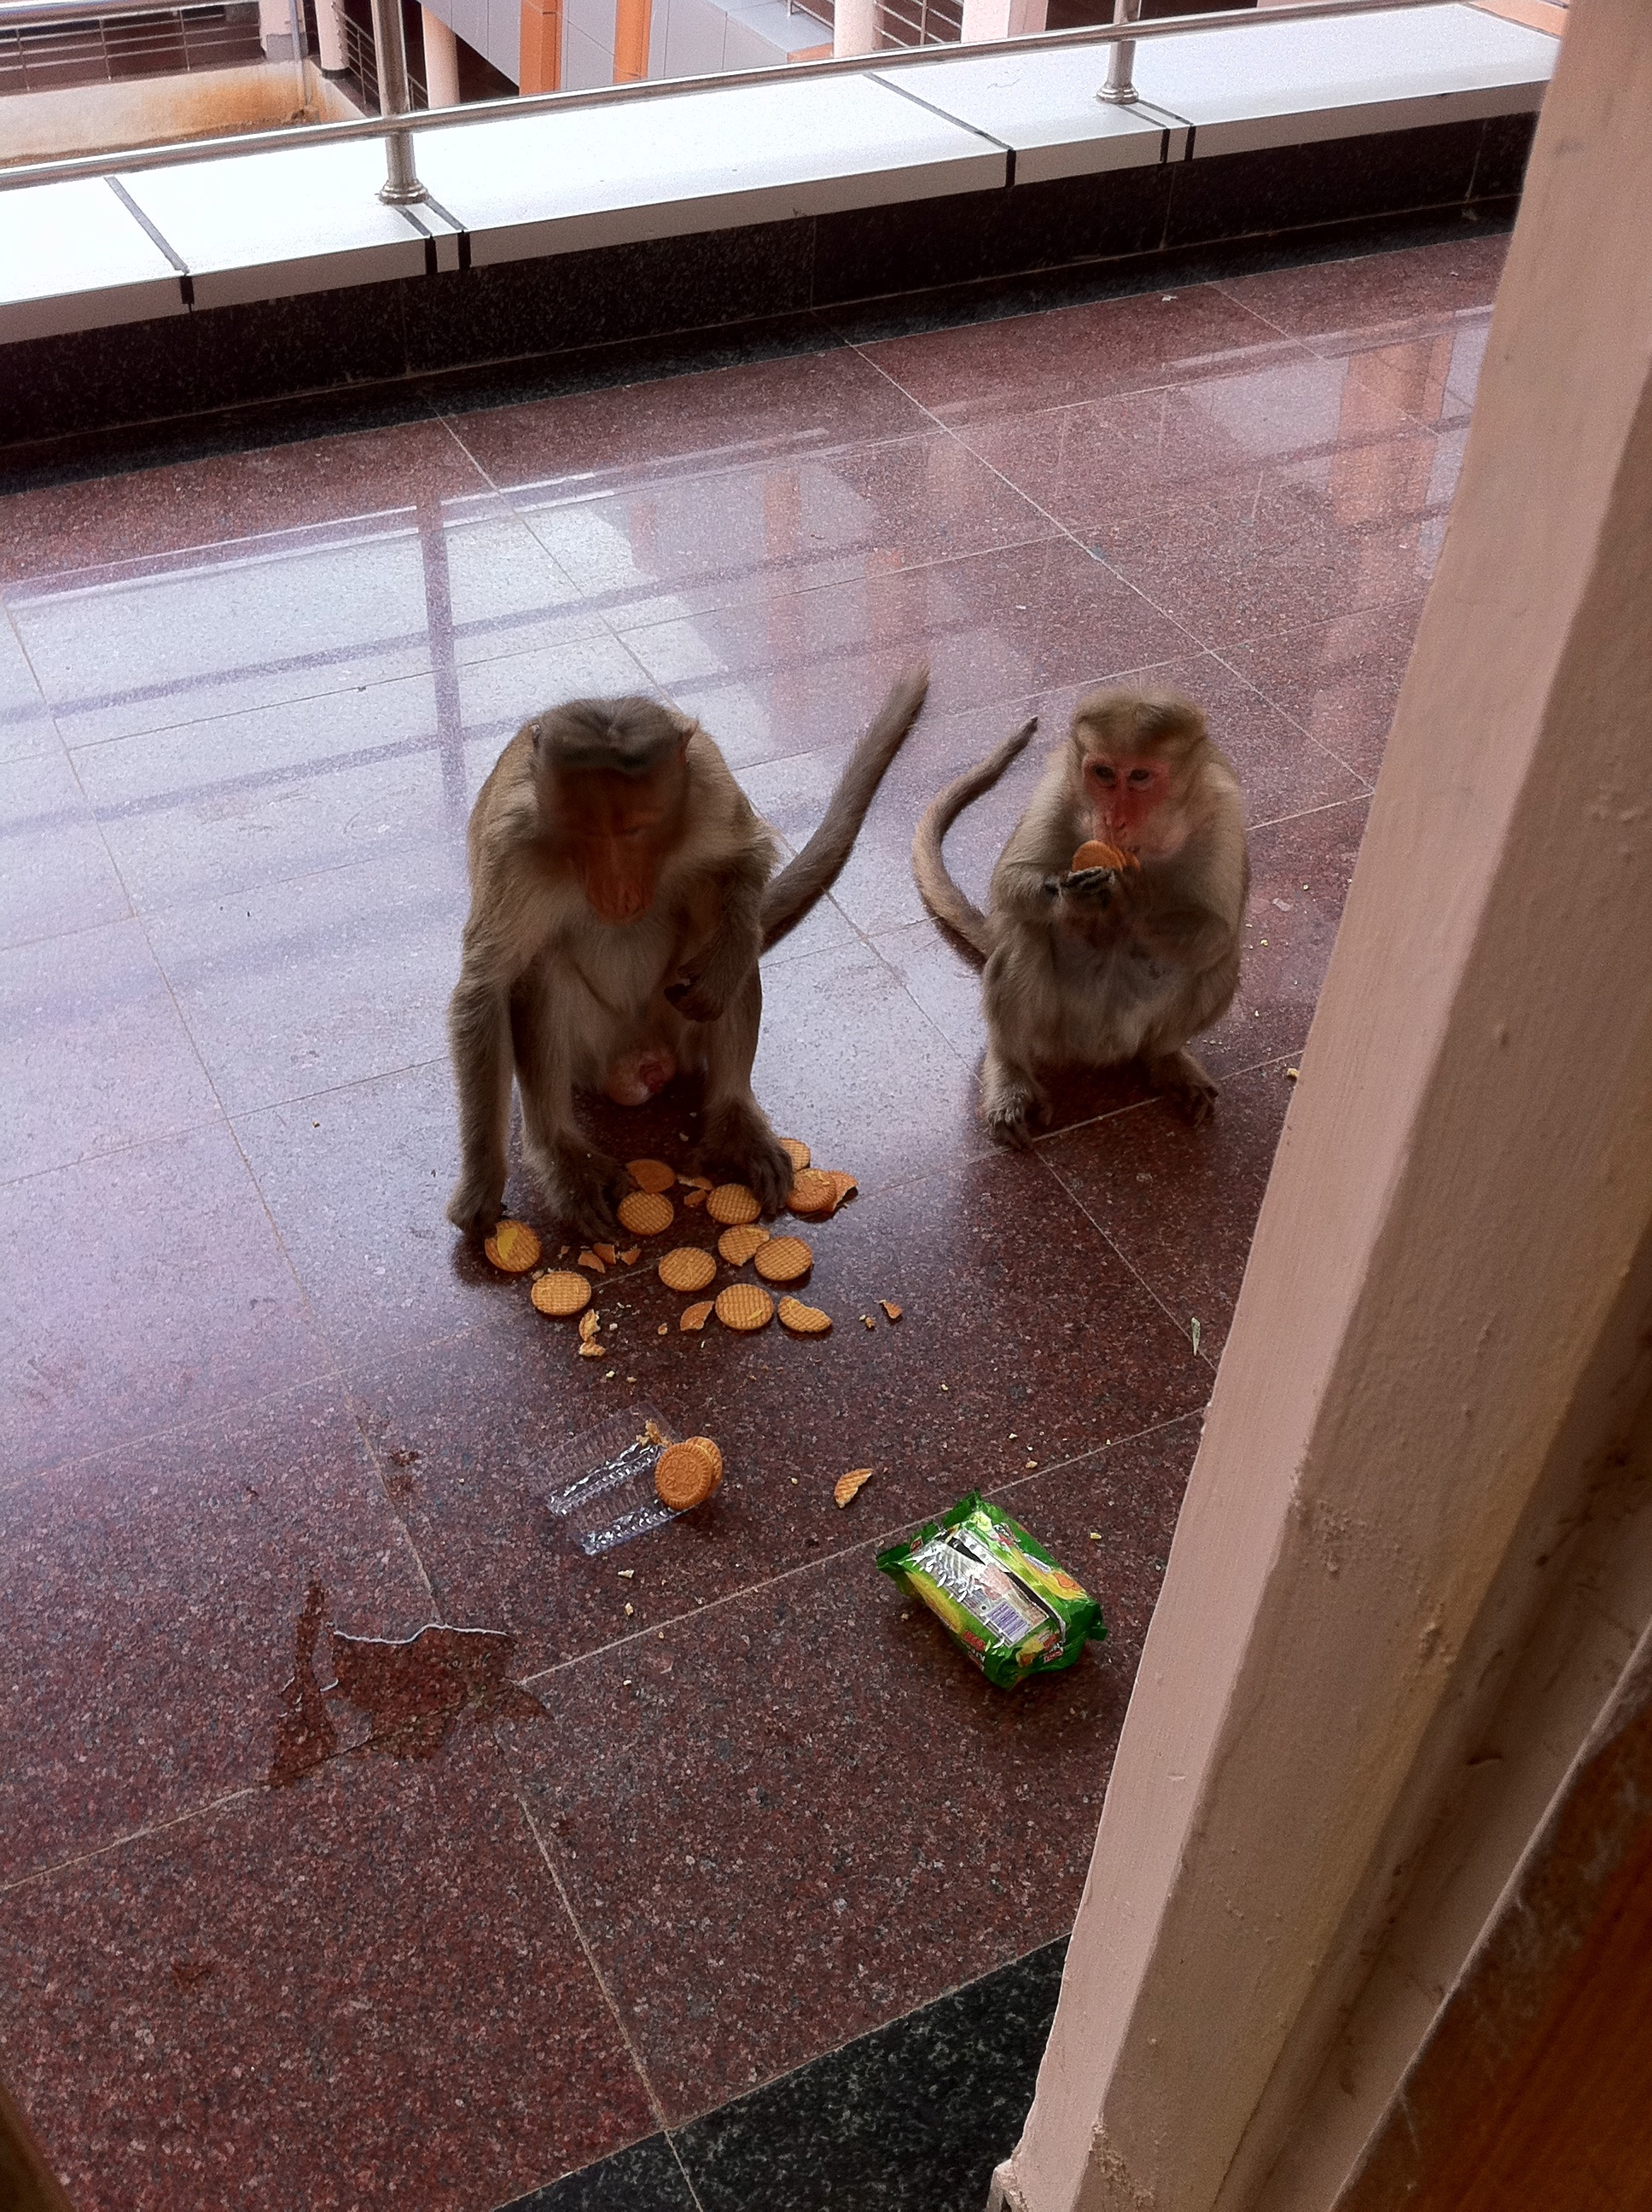 Monkeys in class